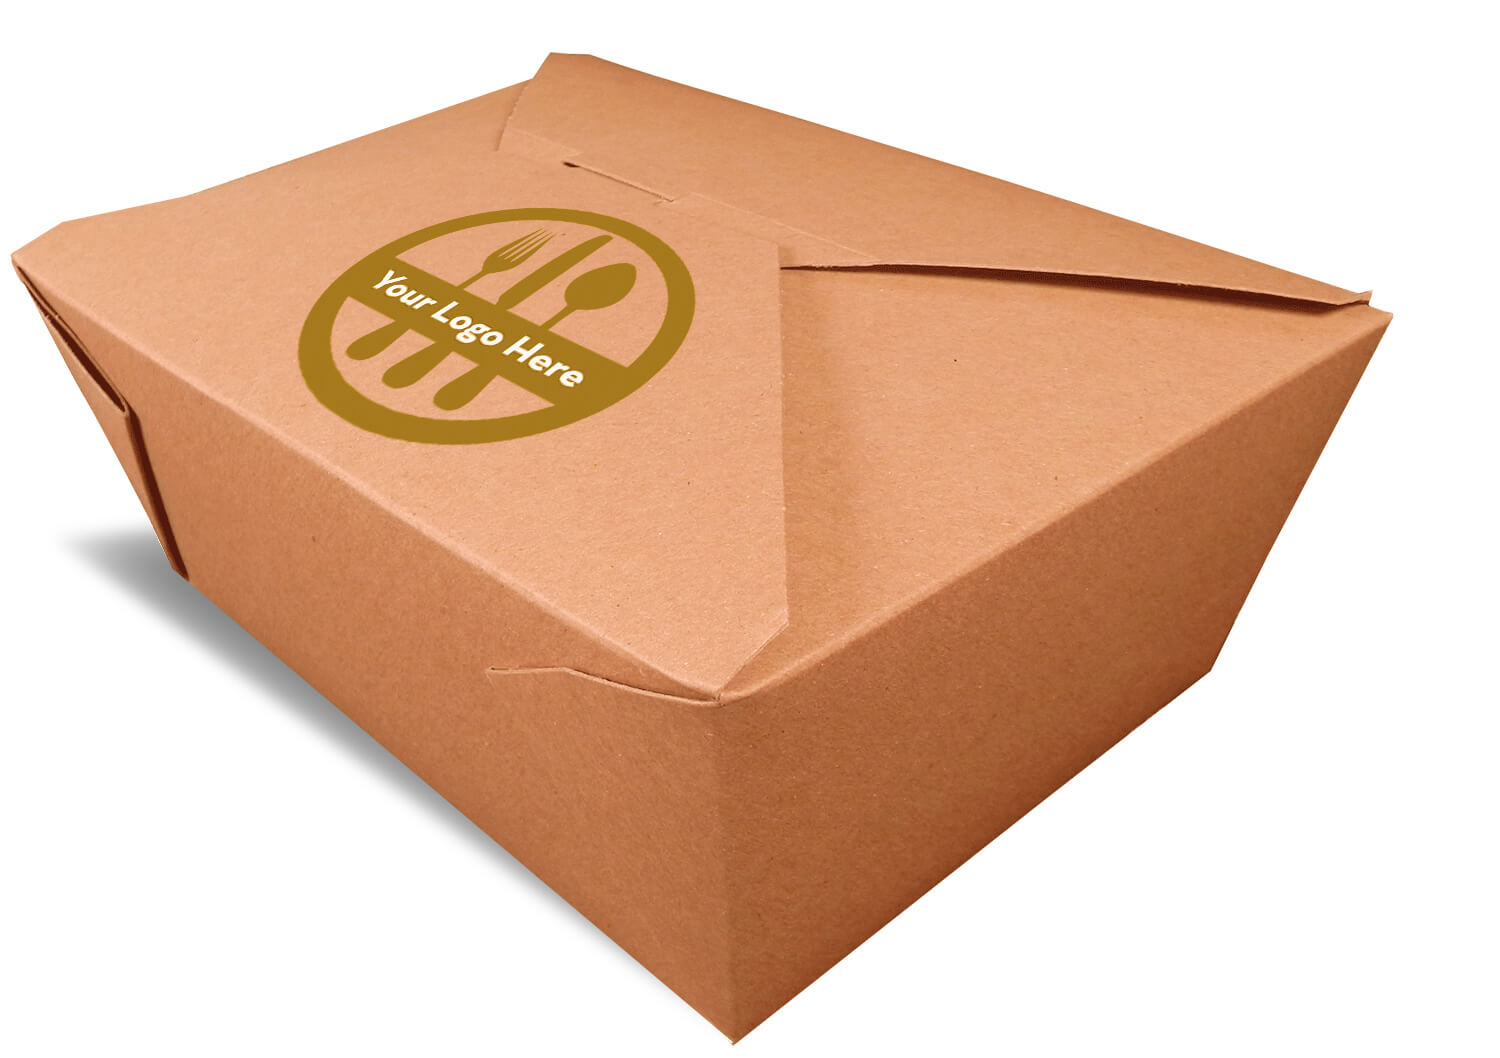 A brown rendering of a closed Bio-Plus earth folding carton container with a printed logo.